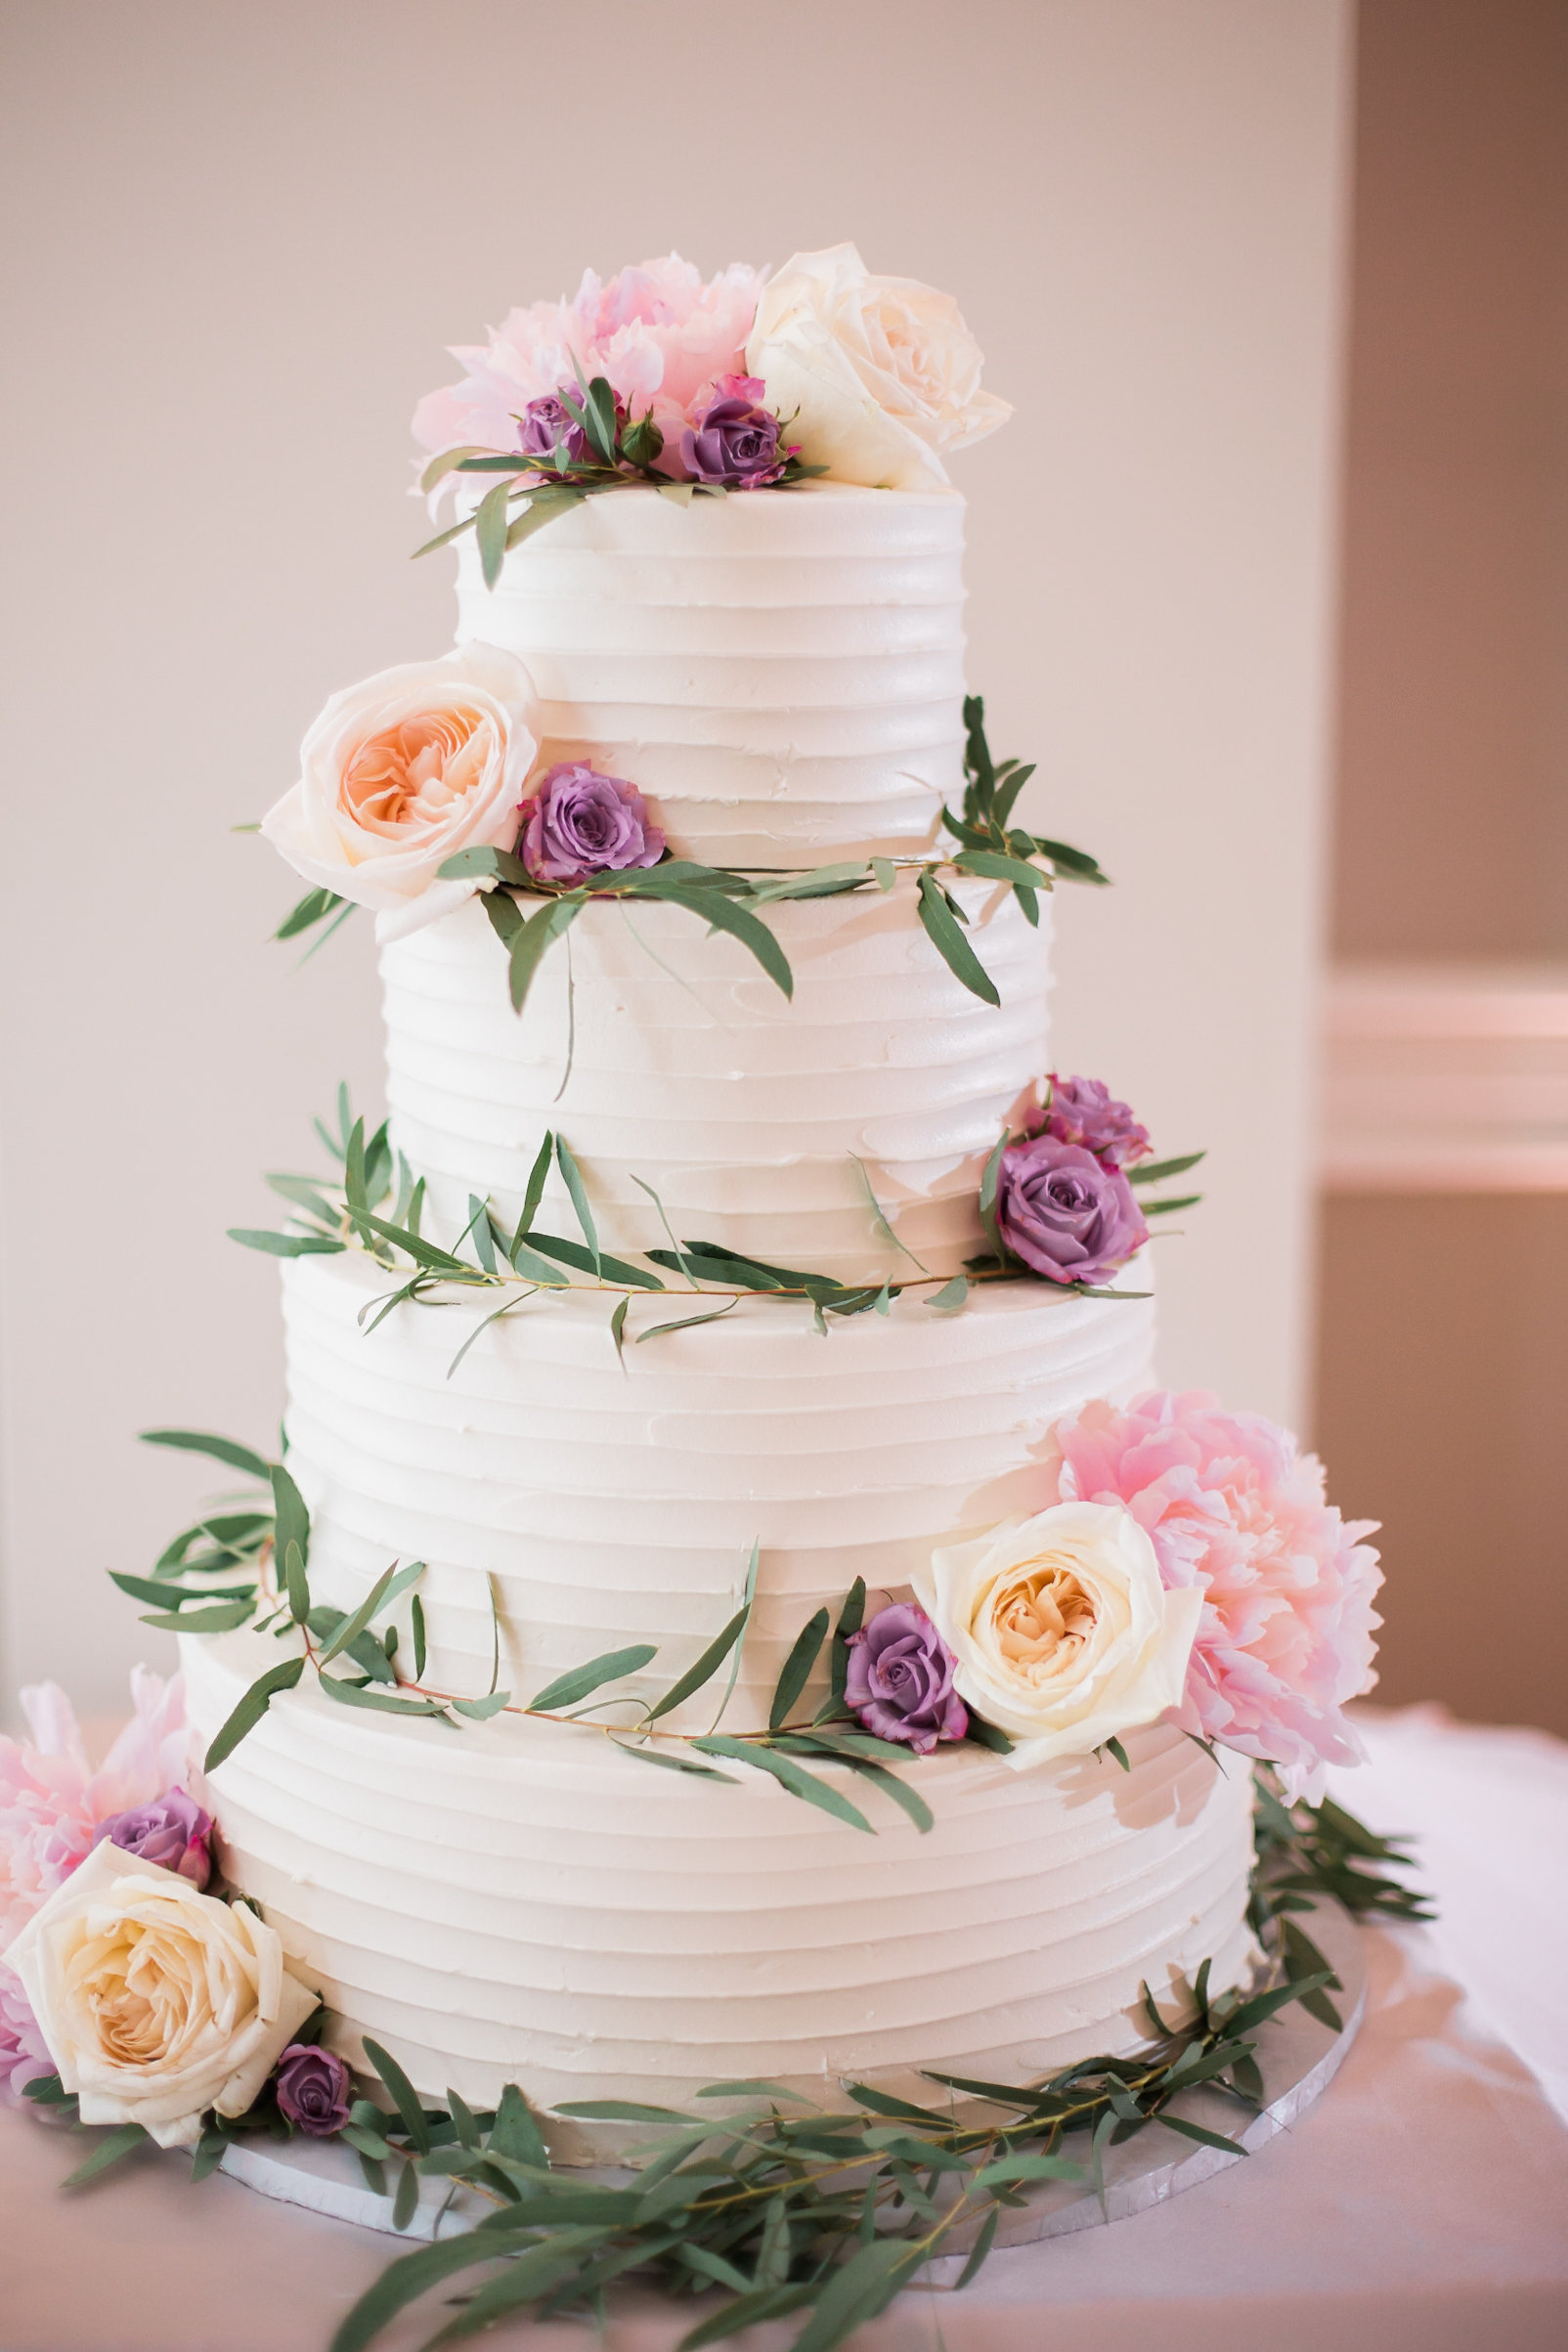 tiered cake with blush and purple flowers